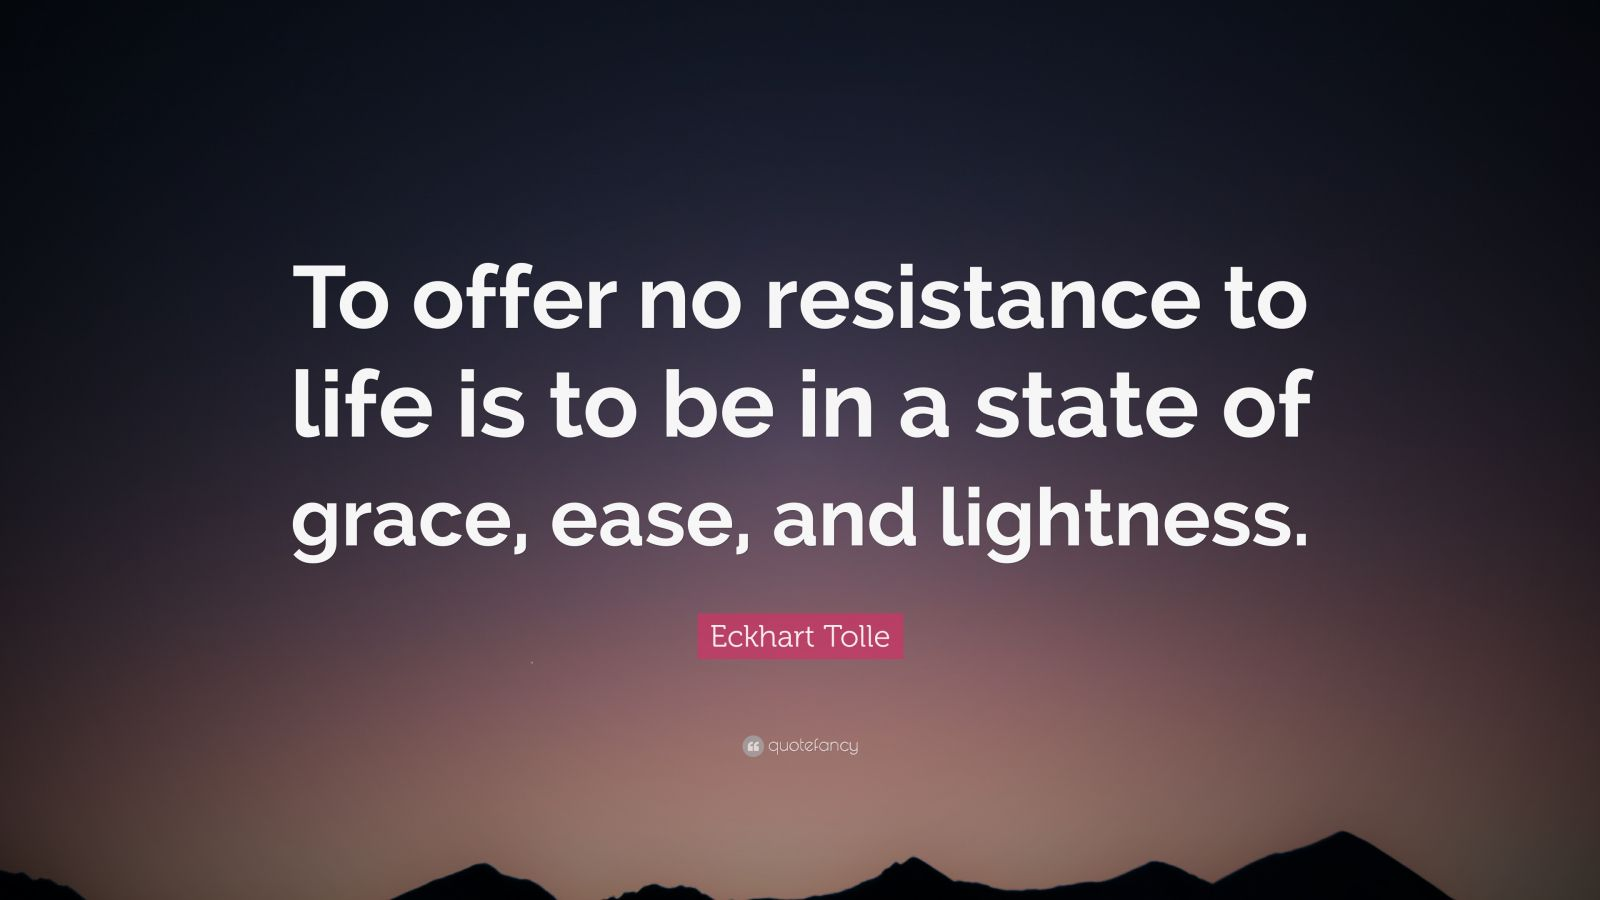 """Eckhart Tolle Quote: """"To offer no resistance to life is to be in a state of grace, ease, and lightness."""""""